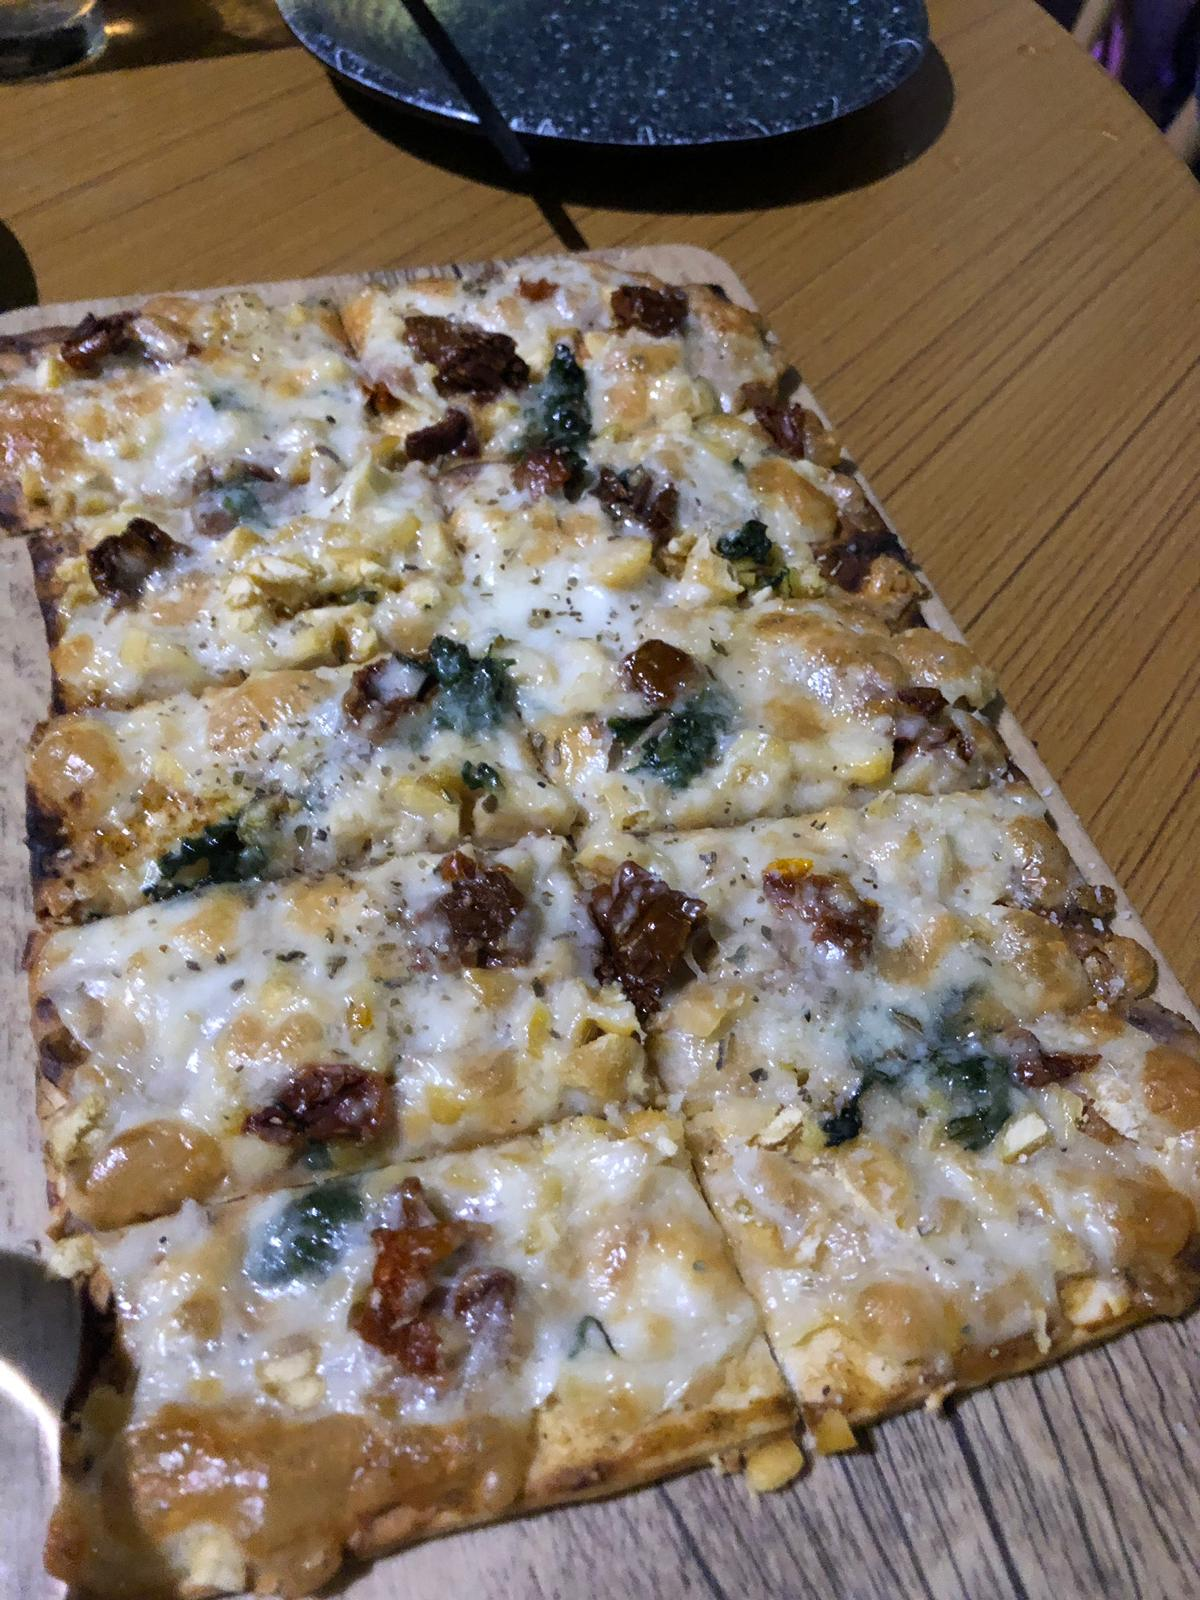 Flatbread with veg and cheese